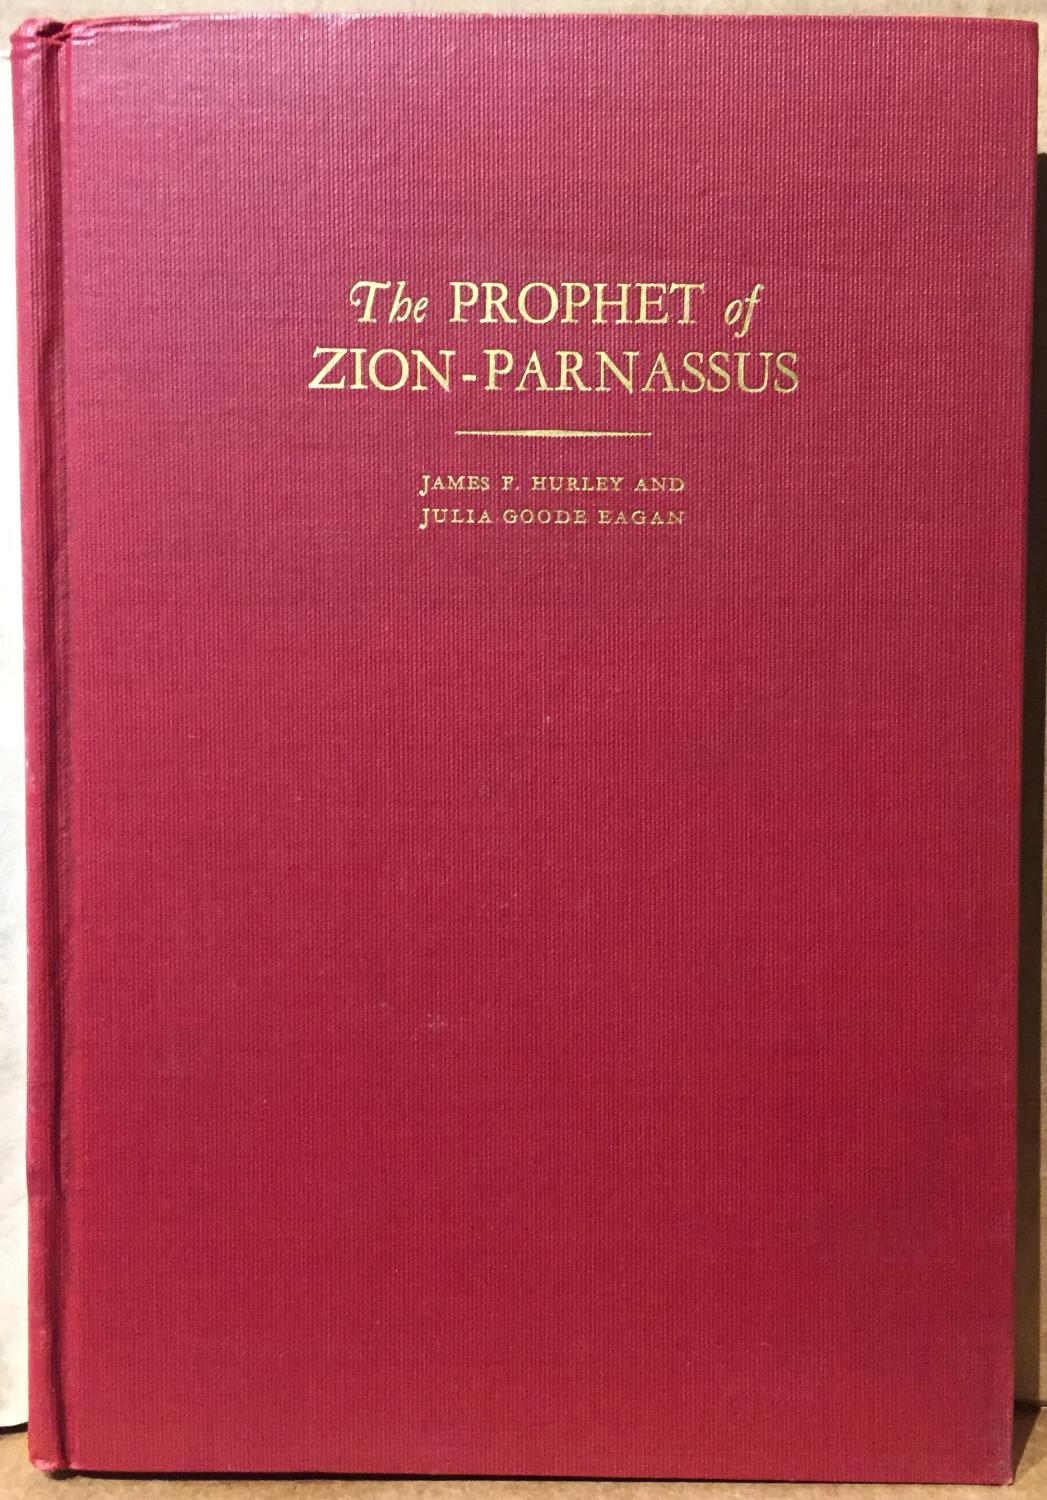 Hurley, James F. and Eagan, Julia, The Prophet of Zion-Parnassus.jpg